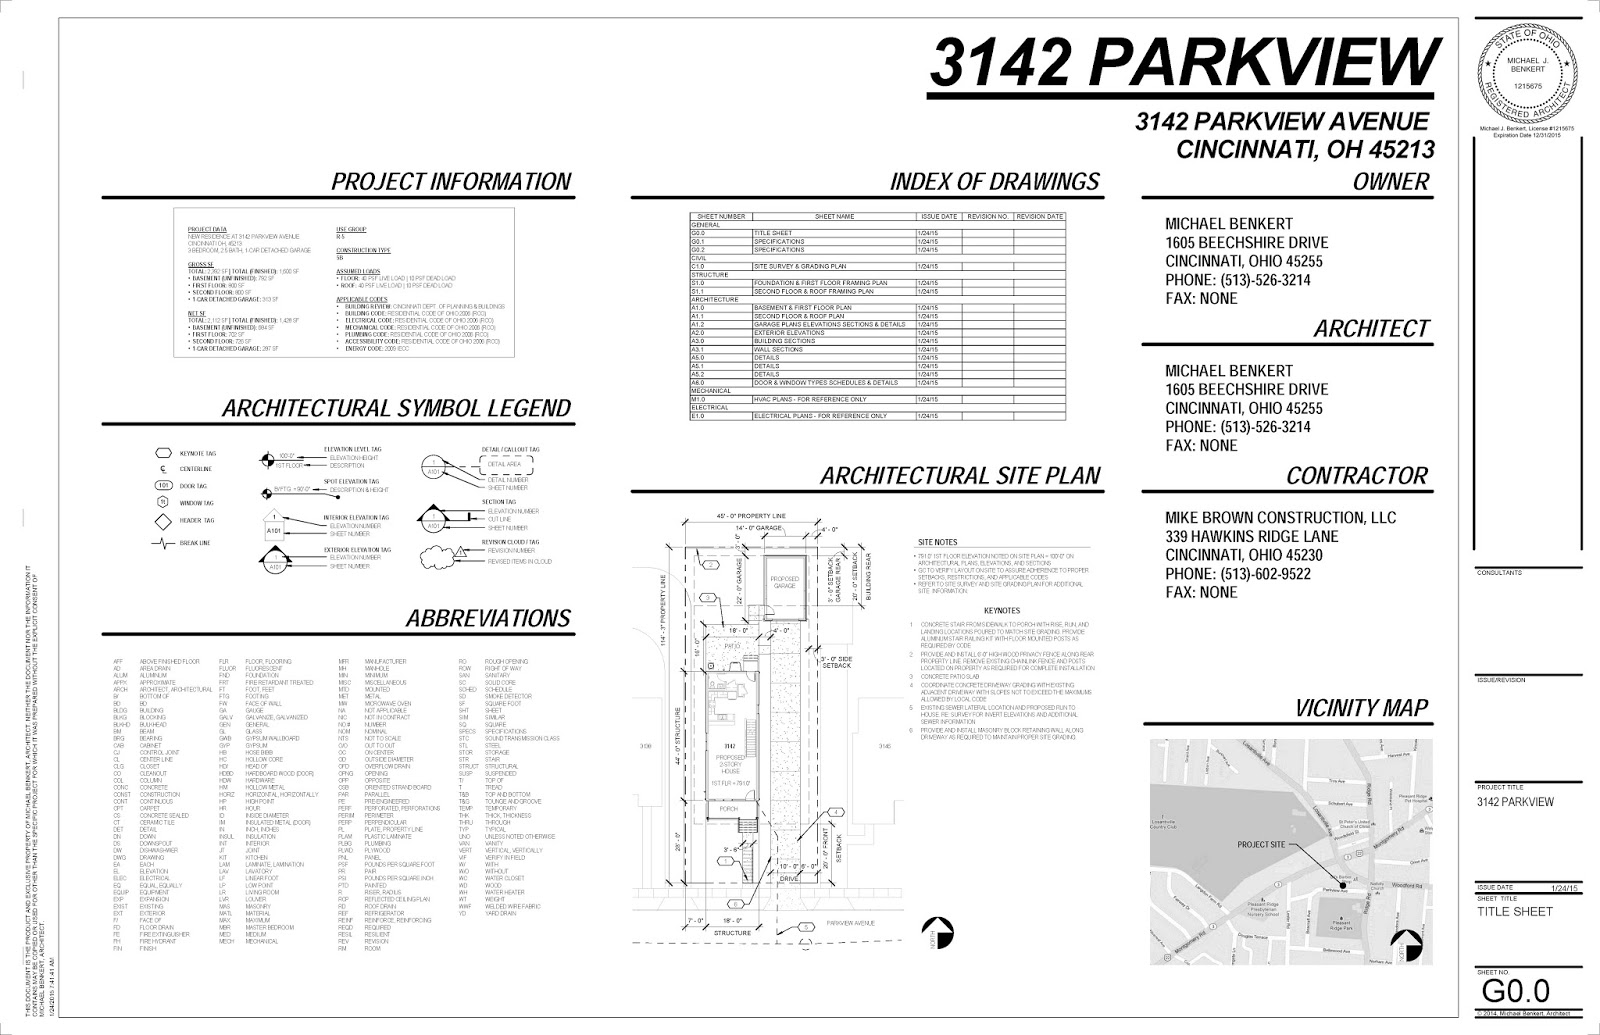 The Home 2.0 Blog: PERMIT DRAWINGS